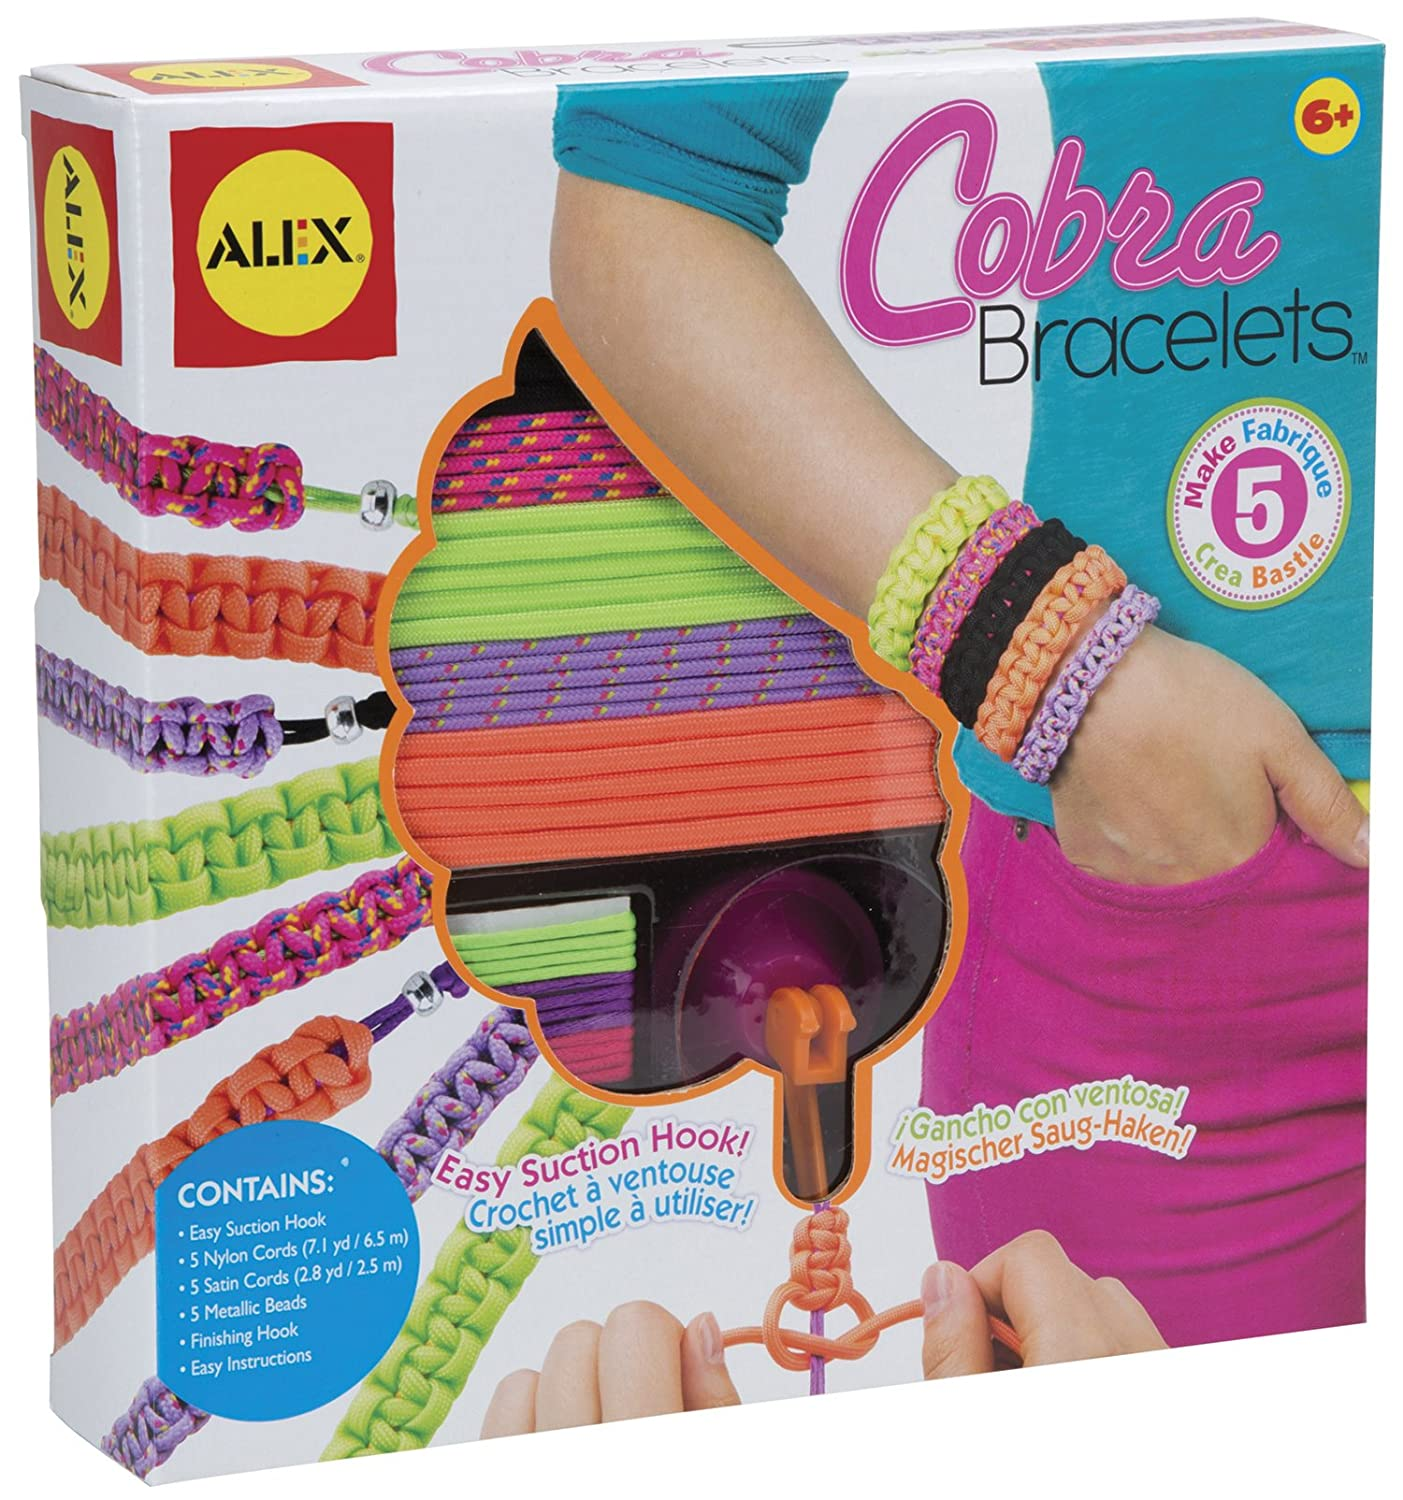 Do-it-Yourself Wear! Cobra Bracelets Craft Kit